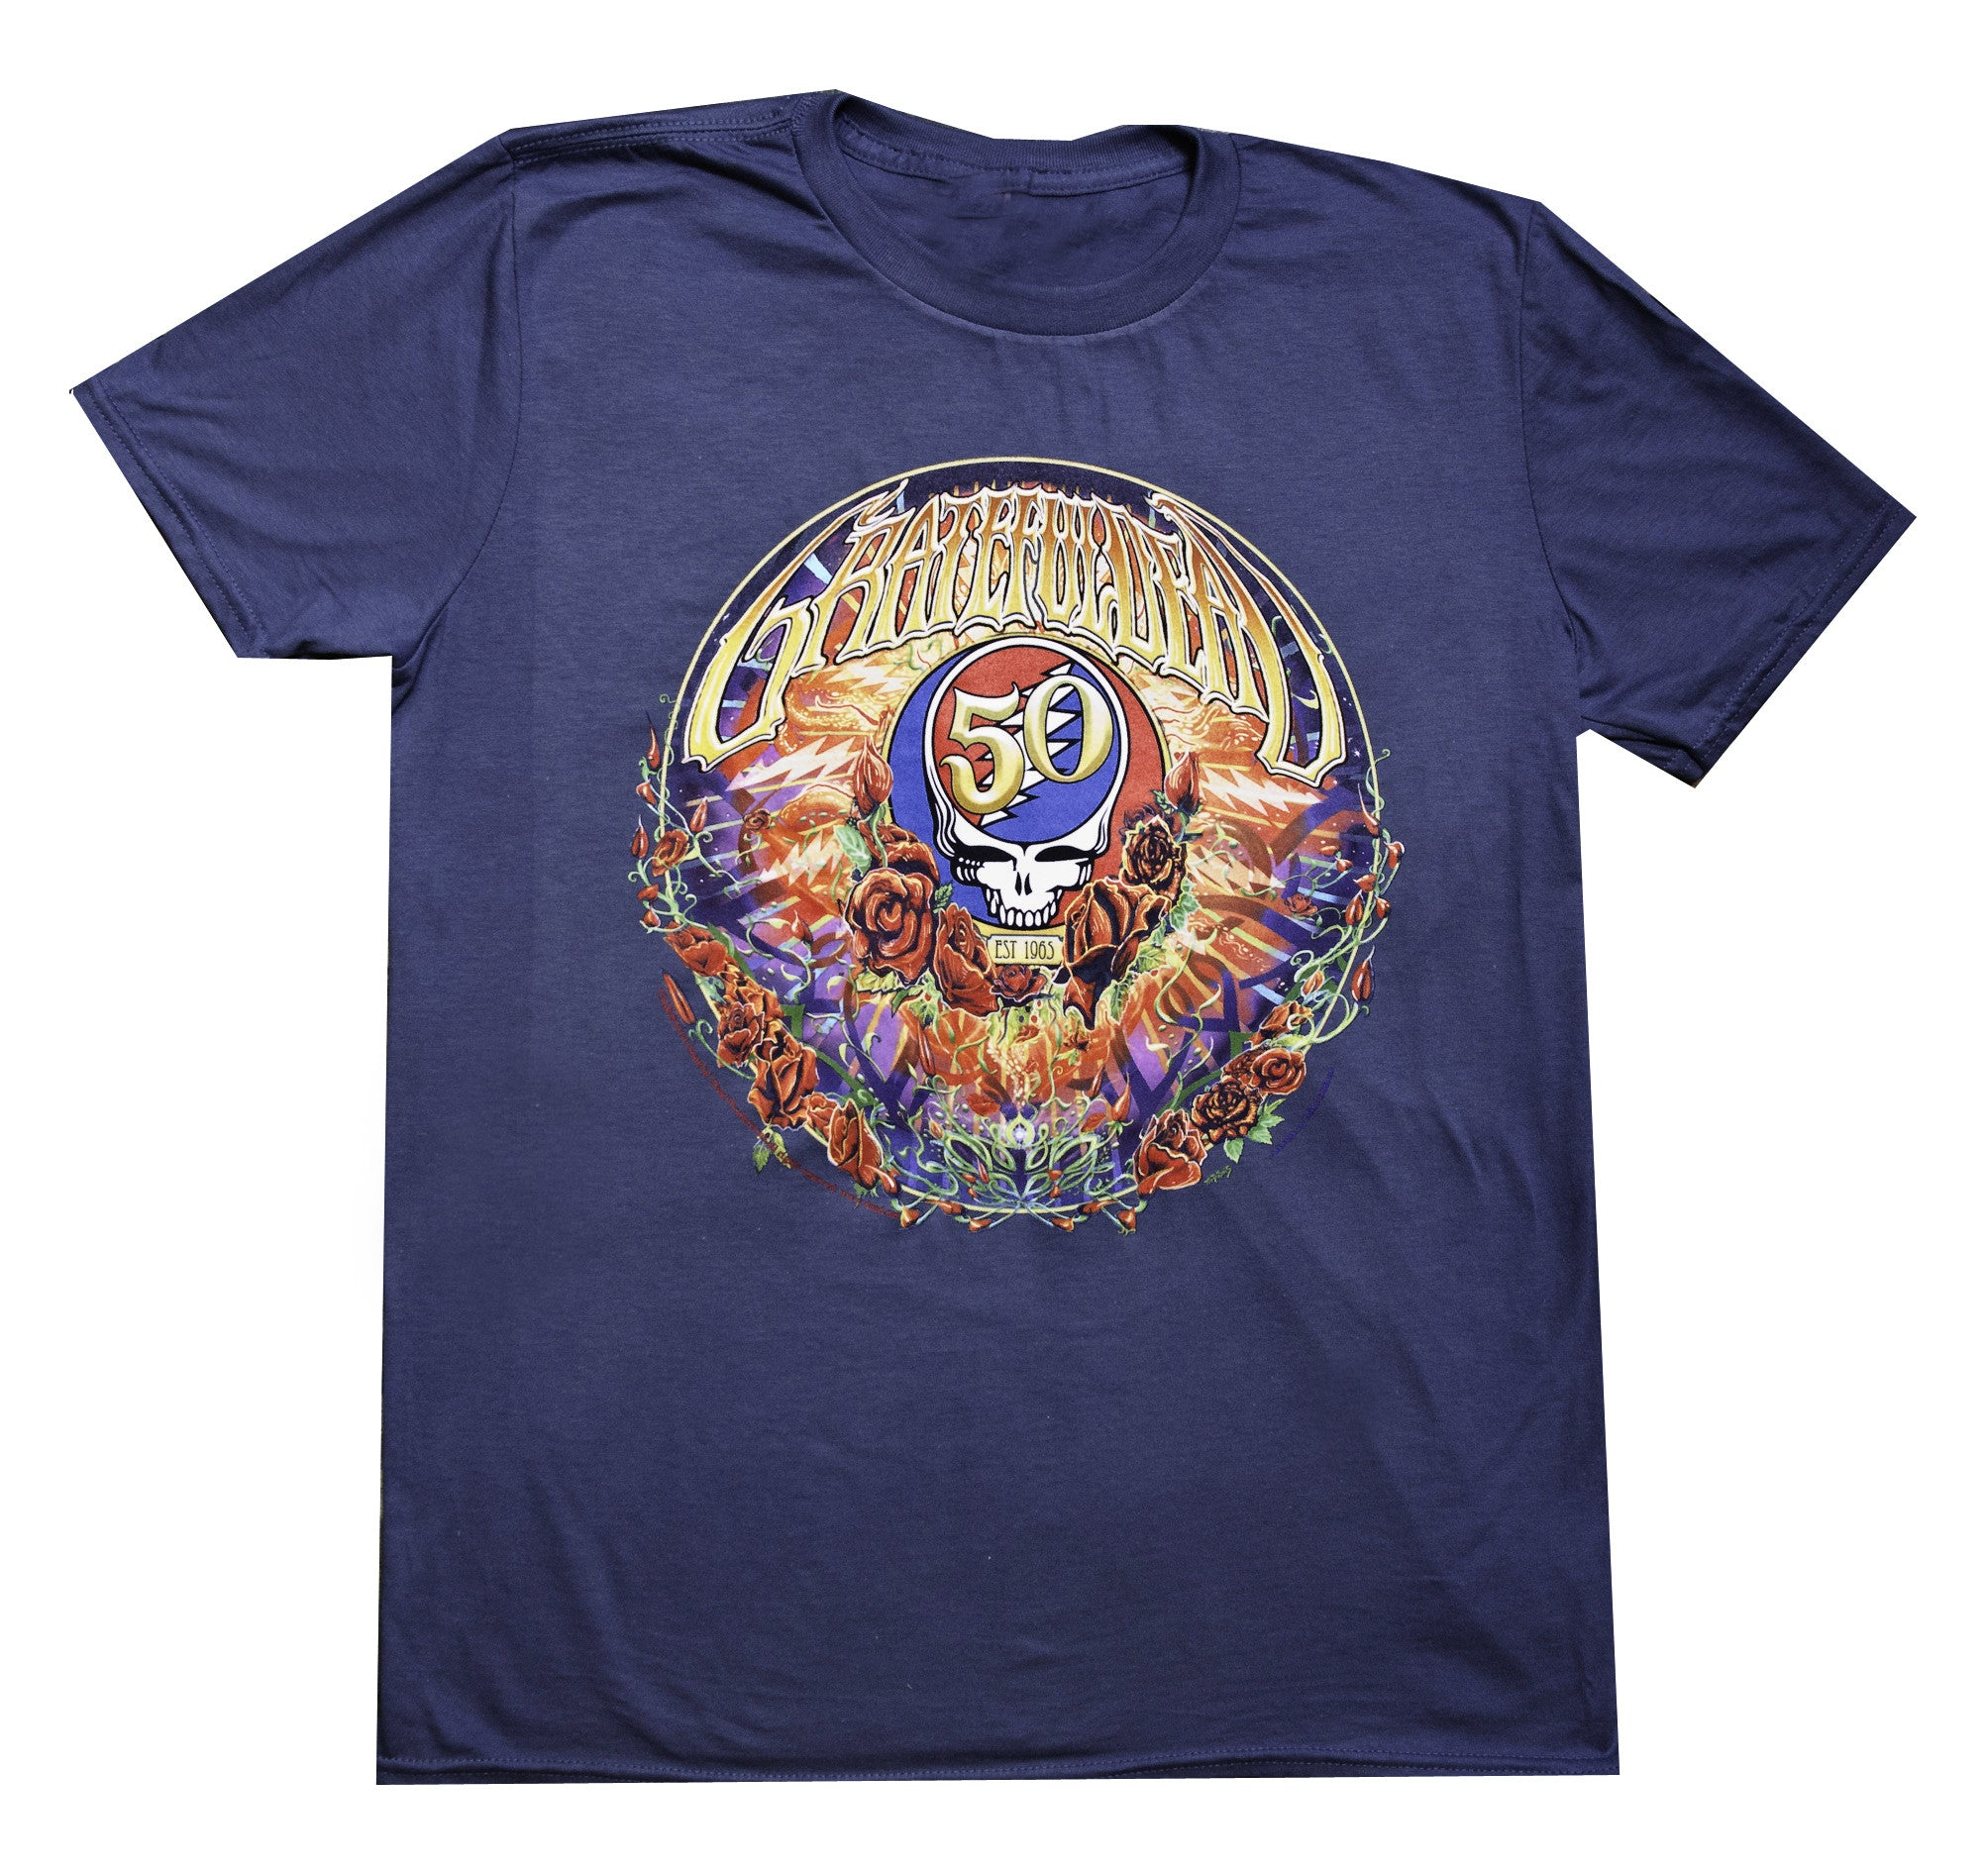 50th Anniversary Grateful Dead Merchandise